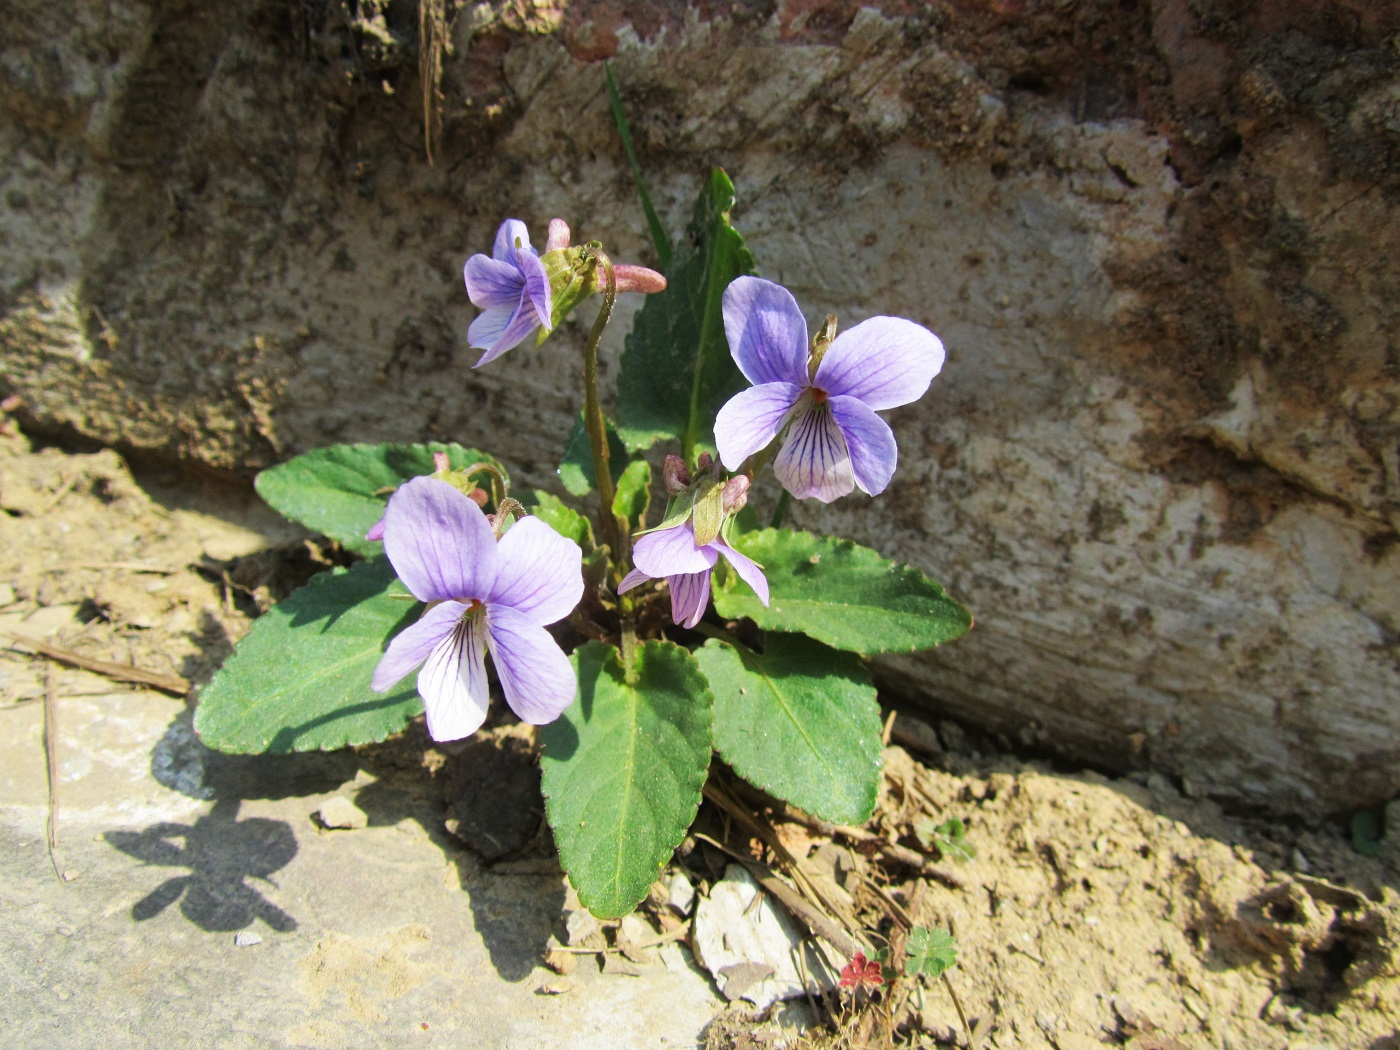 Lone violet growing in dirt - Did flowers bloom more than 50 million years earlier than we thought?